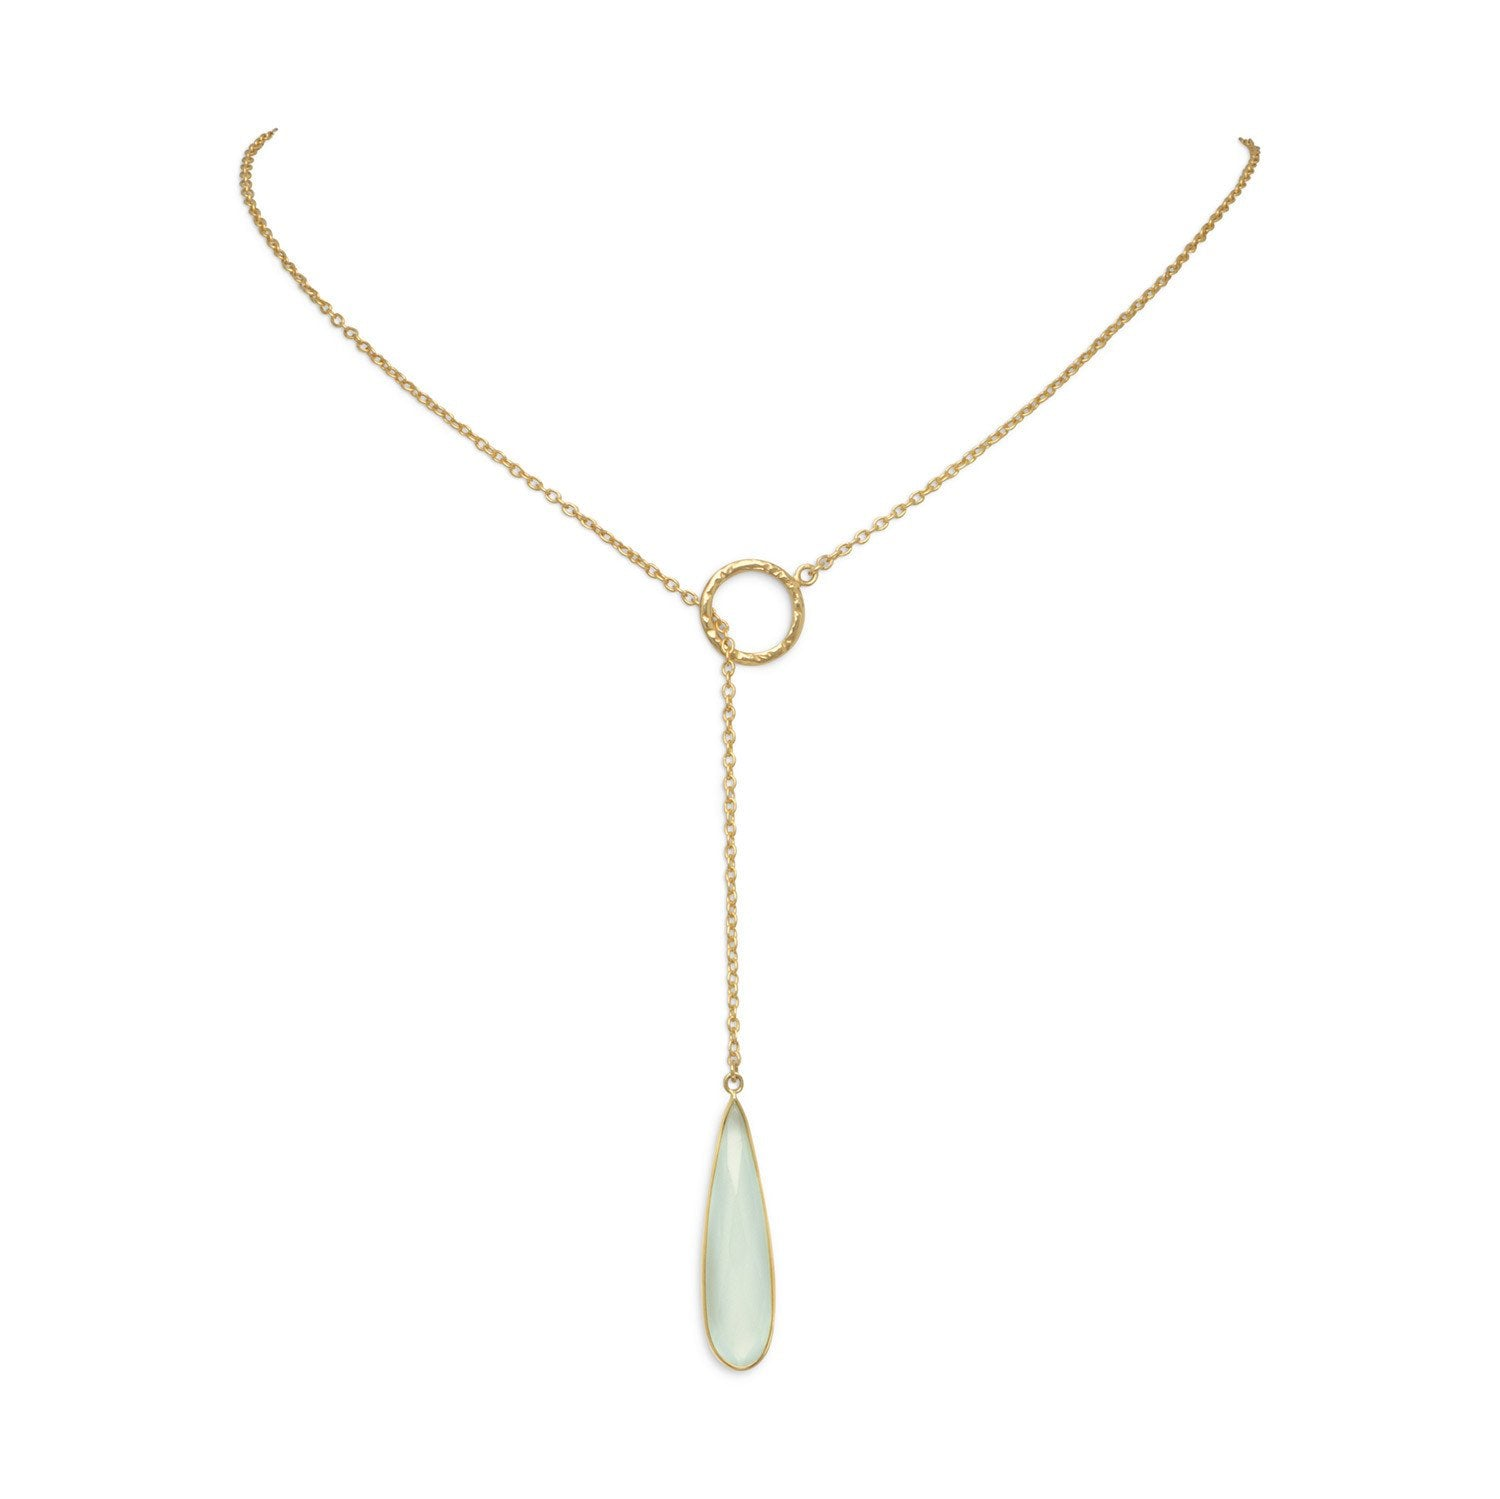 14 Karat Gold Plated Lariat Necklace with Chalcedony Drop - Rocky Mt. Outlet Inc - Shop & Save 24/7